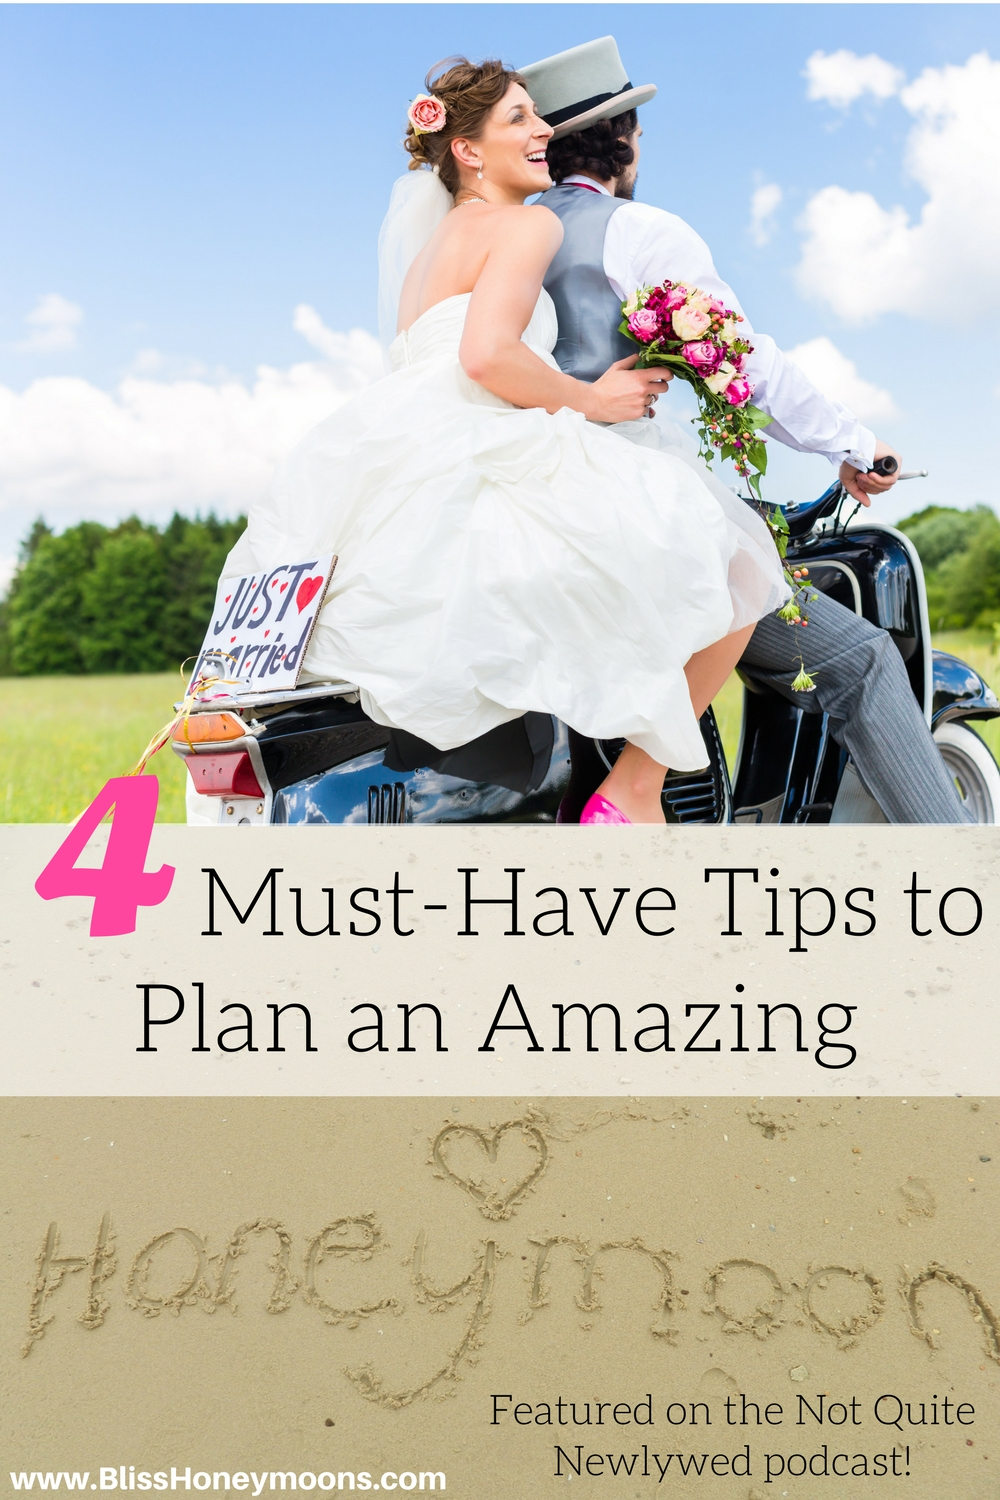 tips to plan an amazing honeymoon, tips to plan honeymoon, plan amazing honeymoon, best honeymoon tips, specialized honeymoons, honeymoon registry tips, best honeymoon registry, how to pay for honeymoon, reduce honeymoon planning stress, best honeymoon travel agent, Bliss Honeymoons review